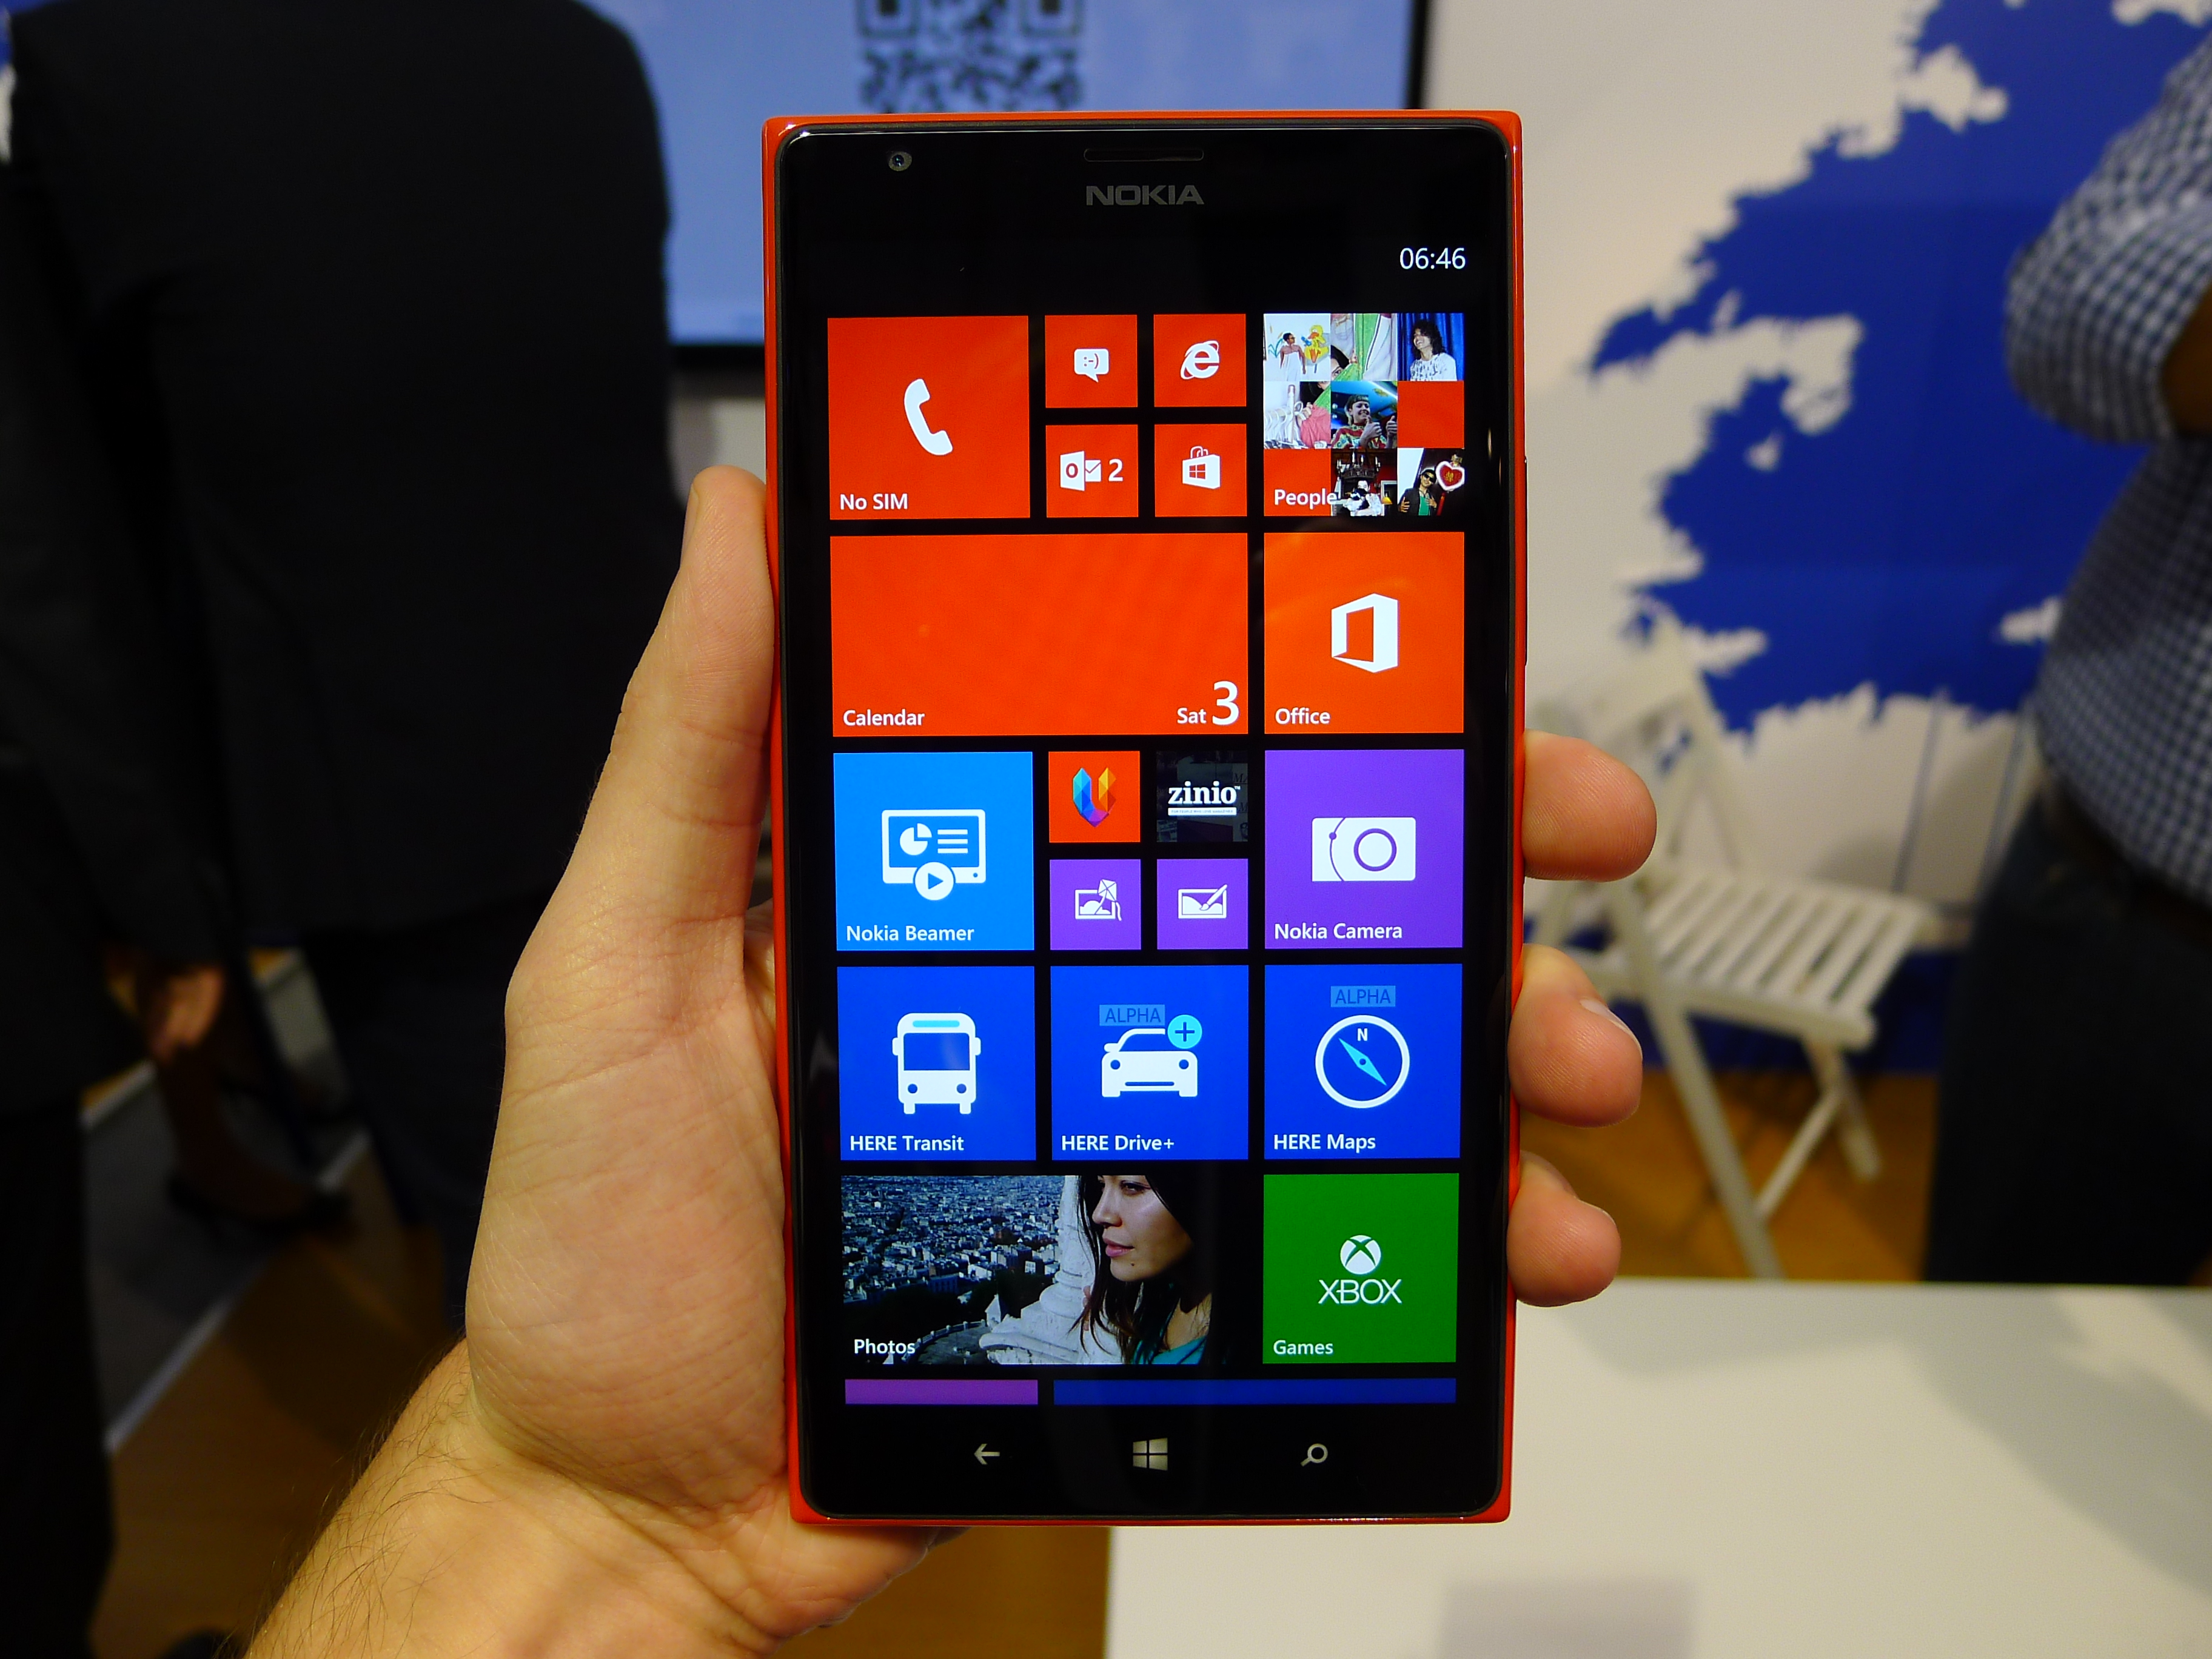 P1040503 Nokia Lumia 1520 hands on: This colossal 6, 1080p quad core smartphone is sizing up the Galaxy Note 3